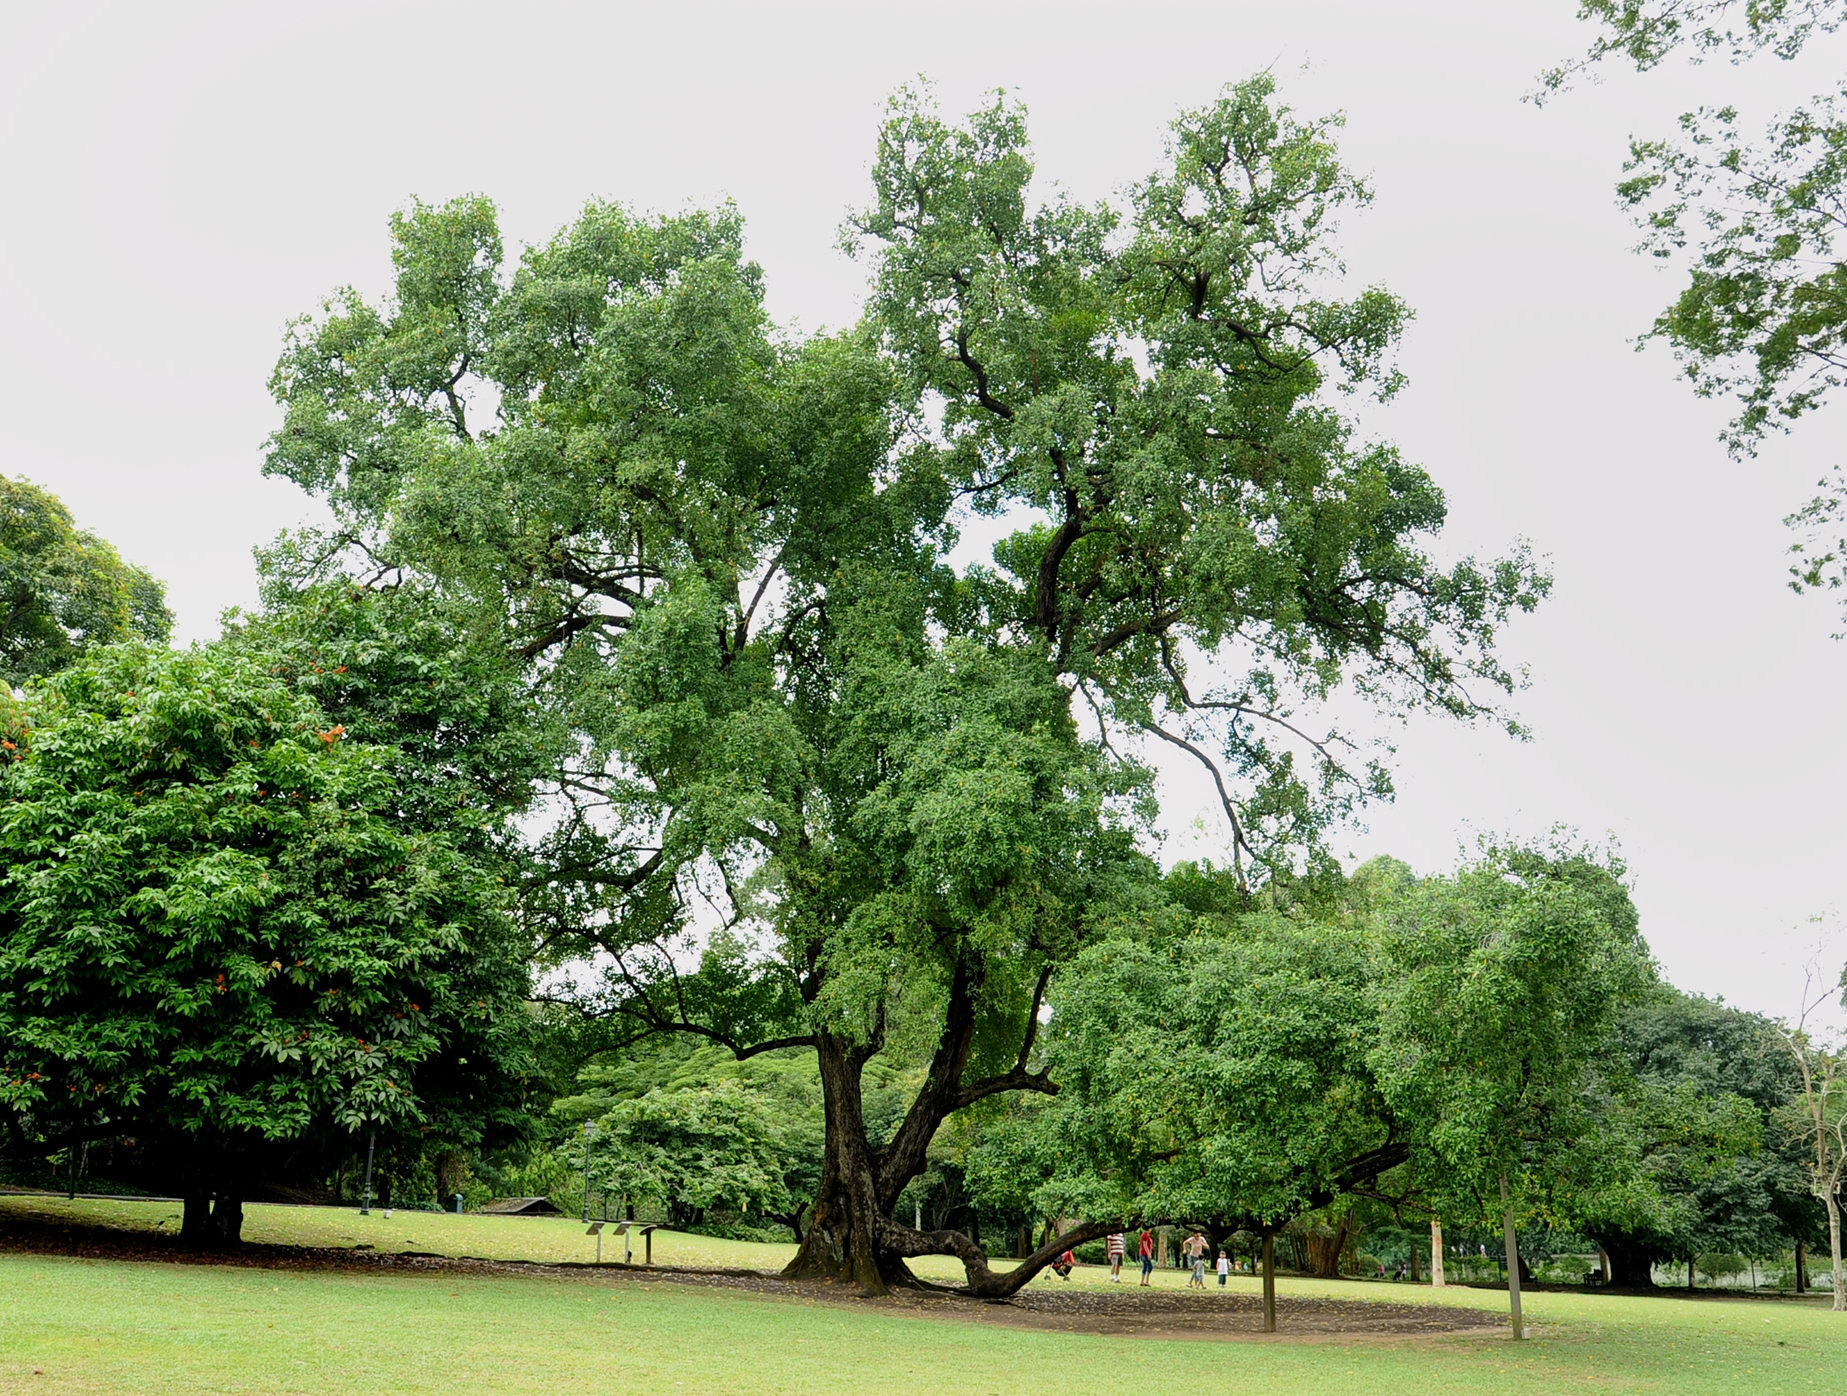 Heritage tree wallpaper screensaver heritage trees for Garden trees